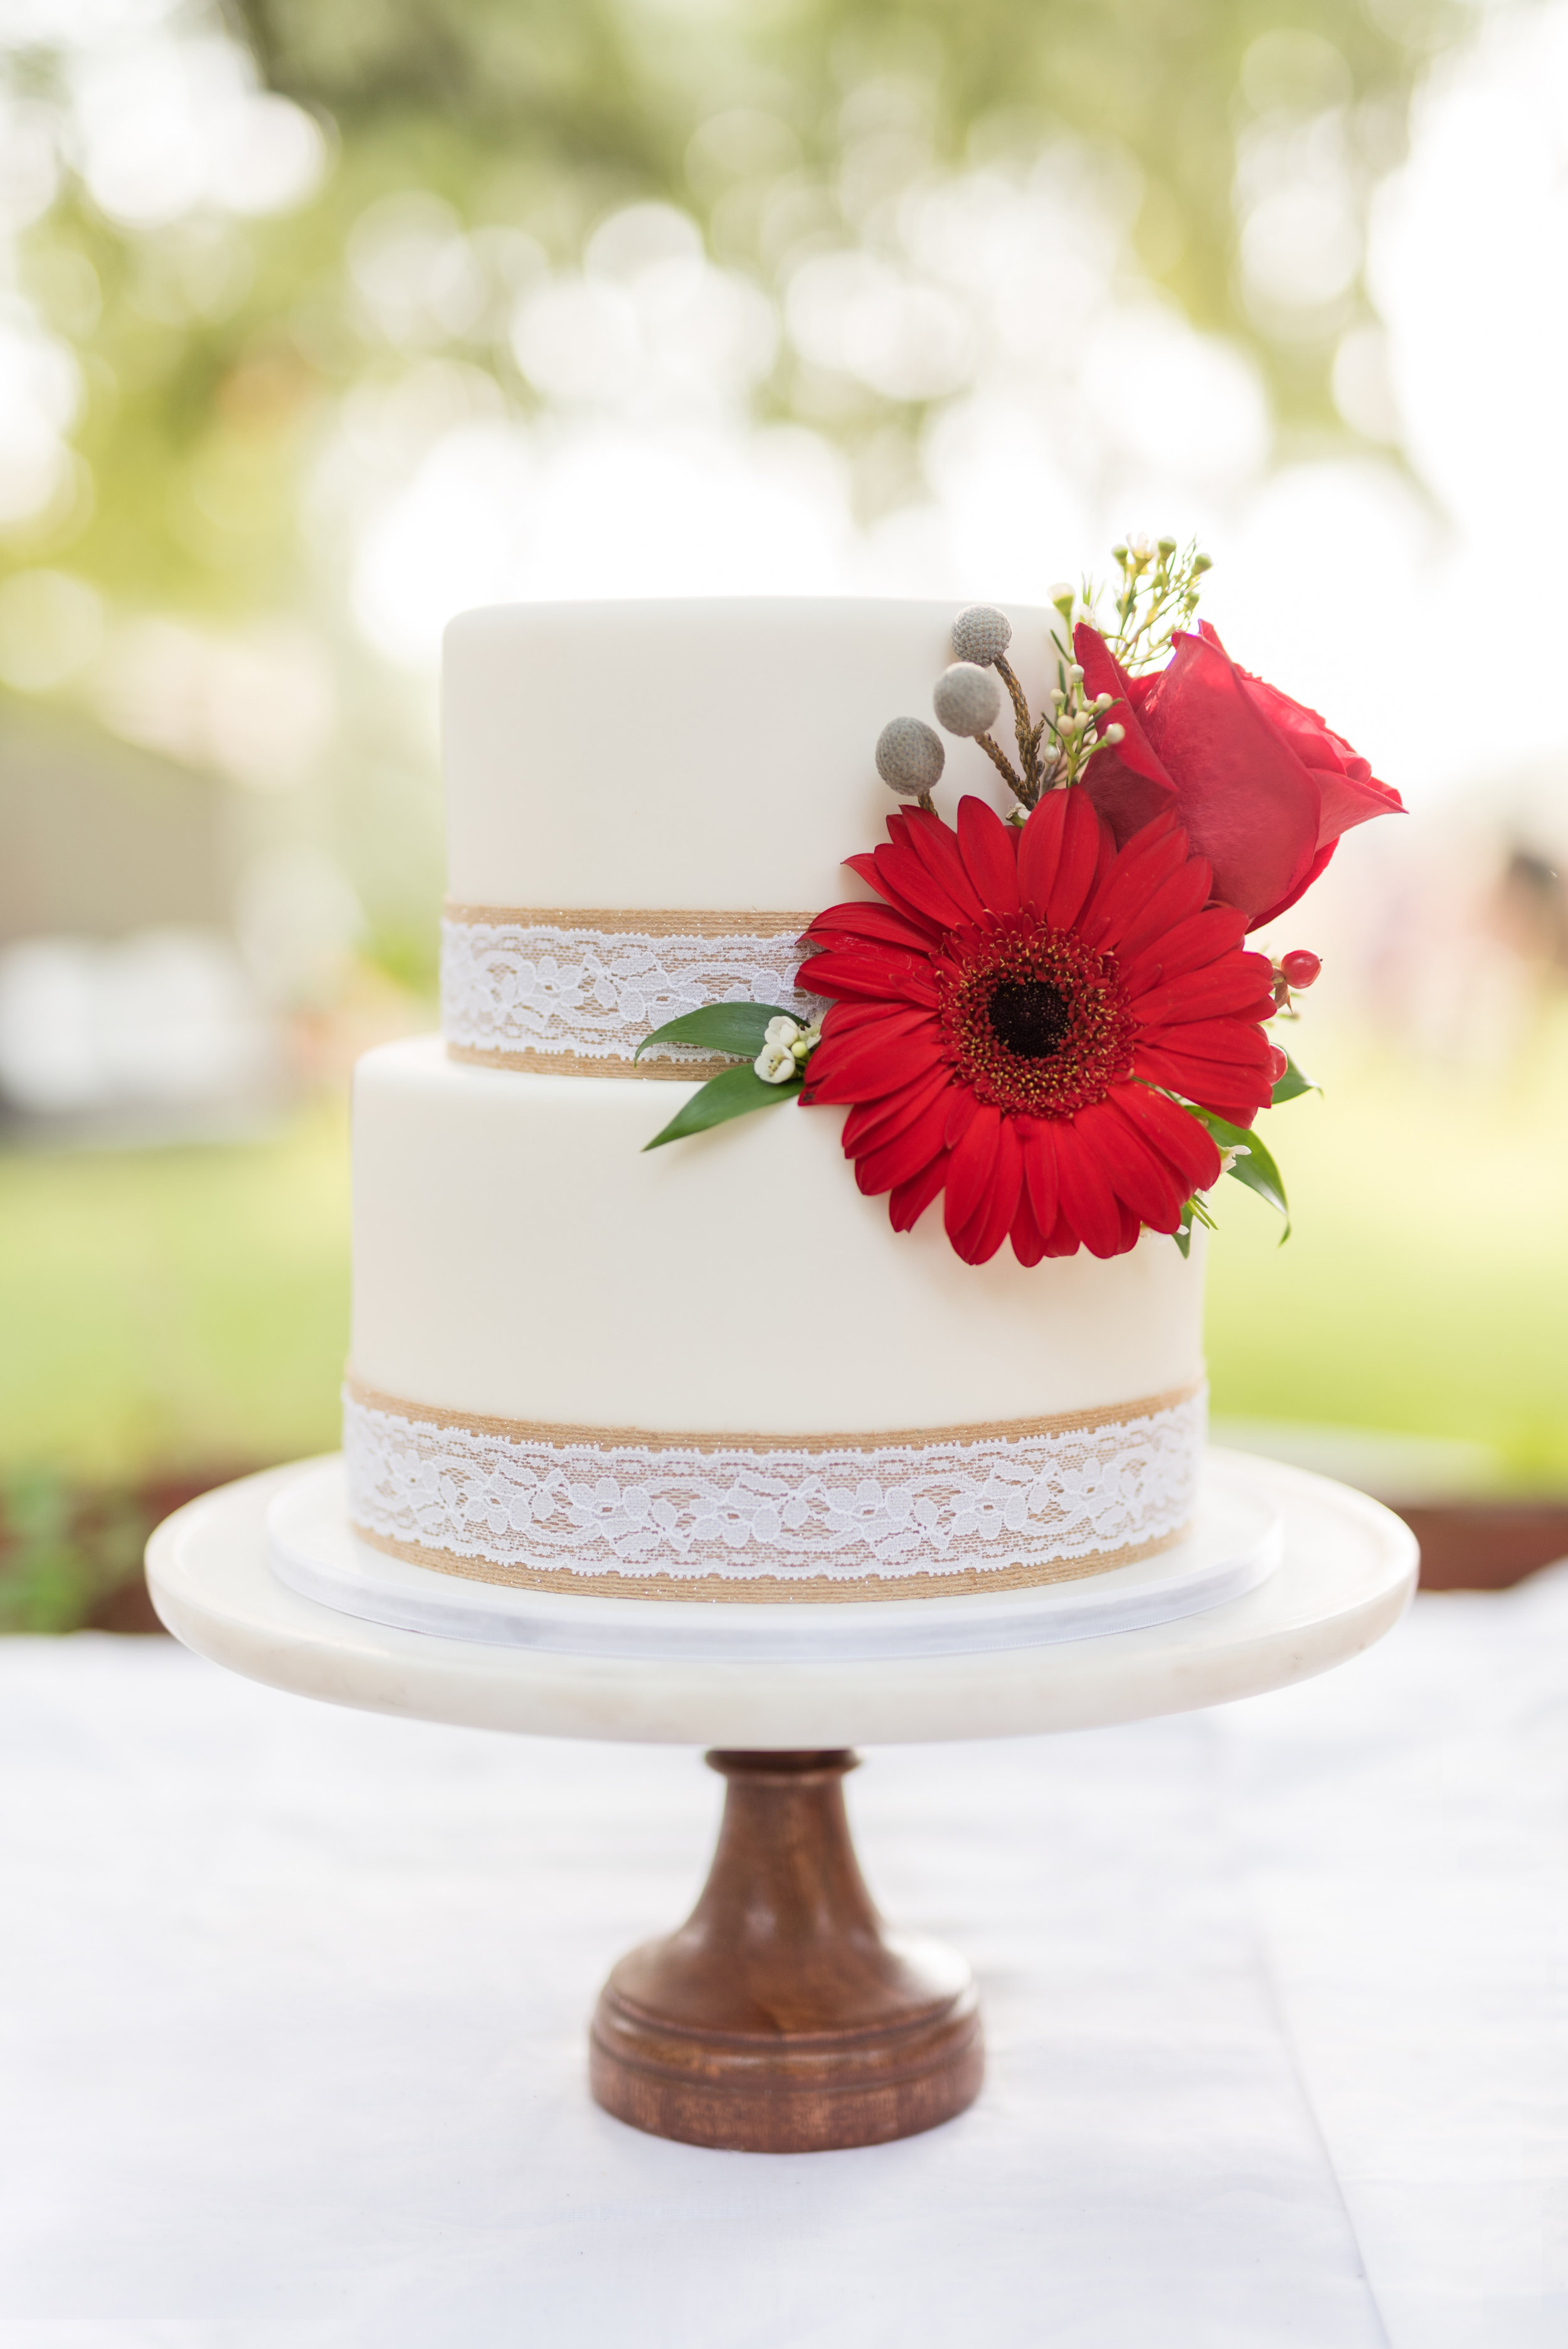 Wedding Cakes in Utah - Sweet Cravings by Marcia Hill_010.jpg